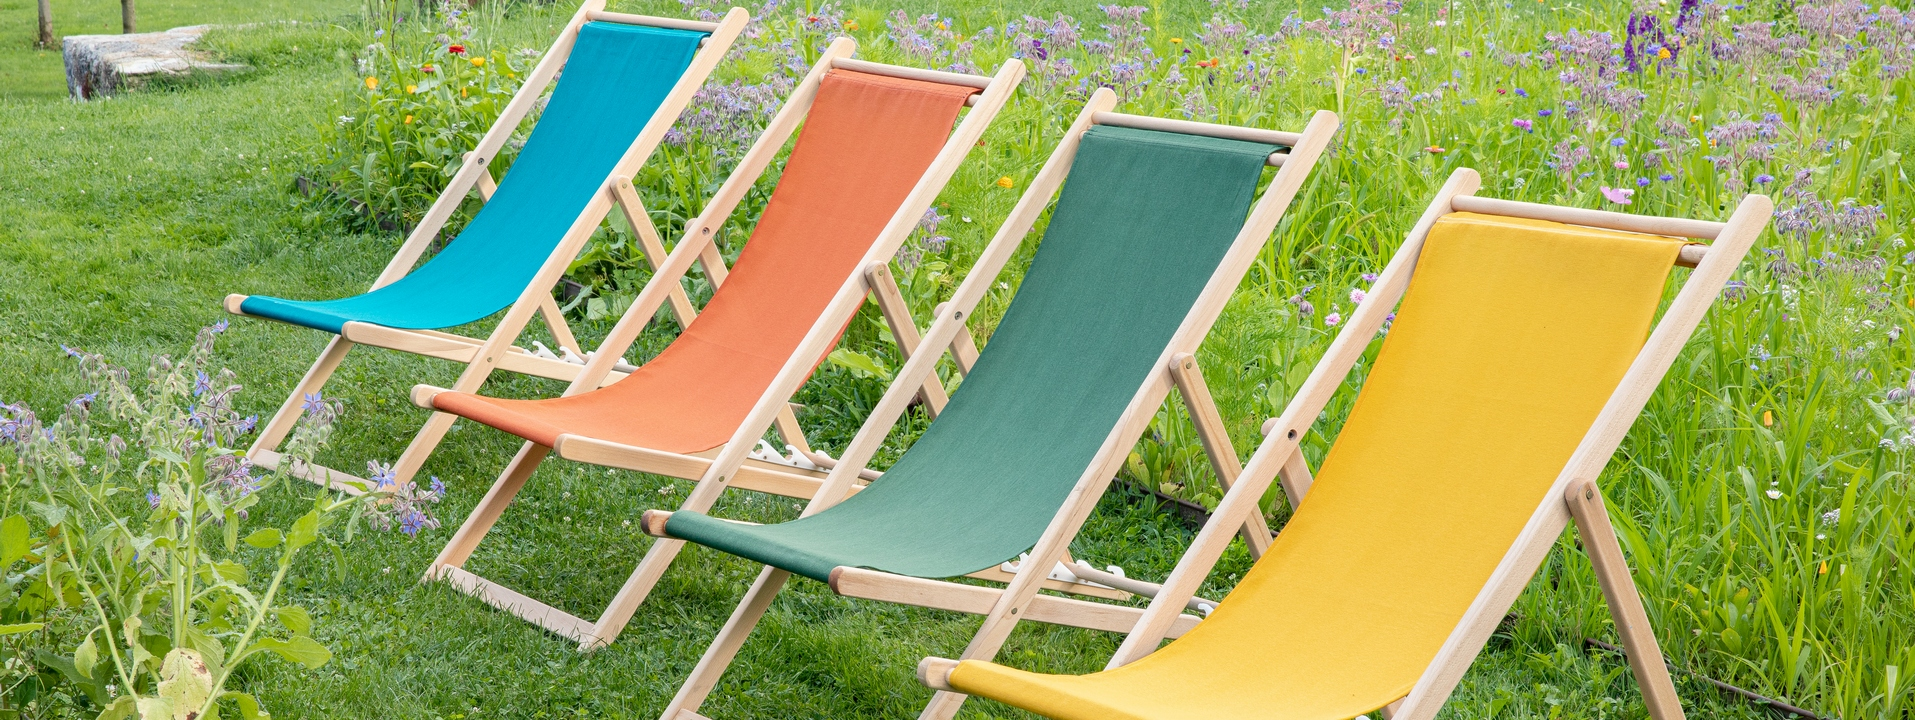 Chiliennes, relax et repose-pieds